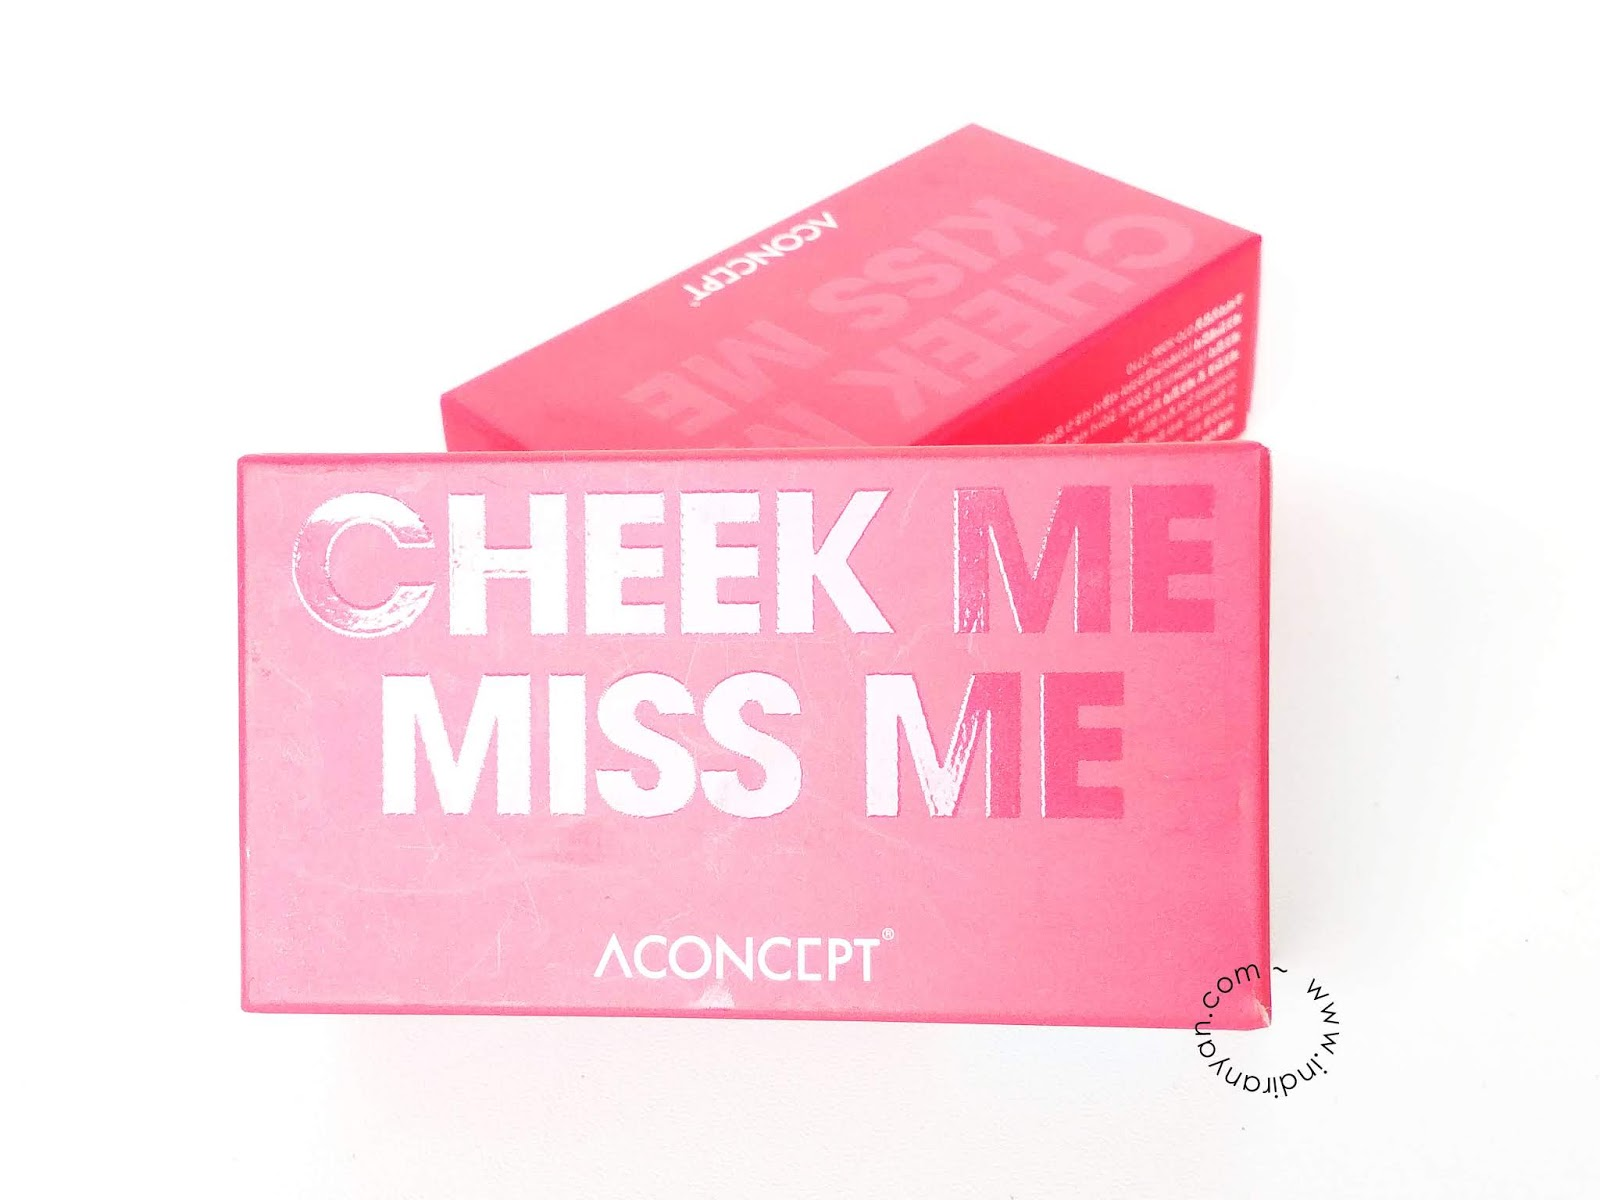 aconcept-cheek-me, review-aconcept--cheek-me, aconcept-cheek-me-review